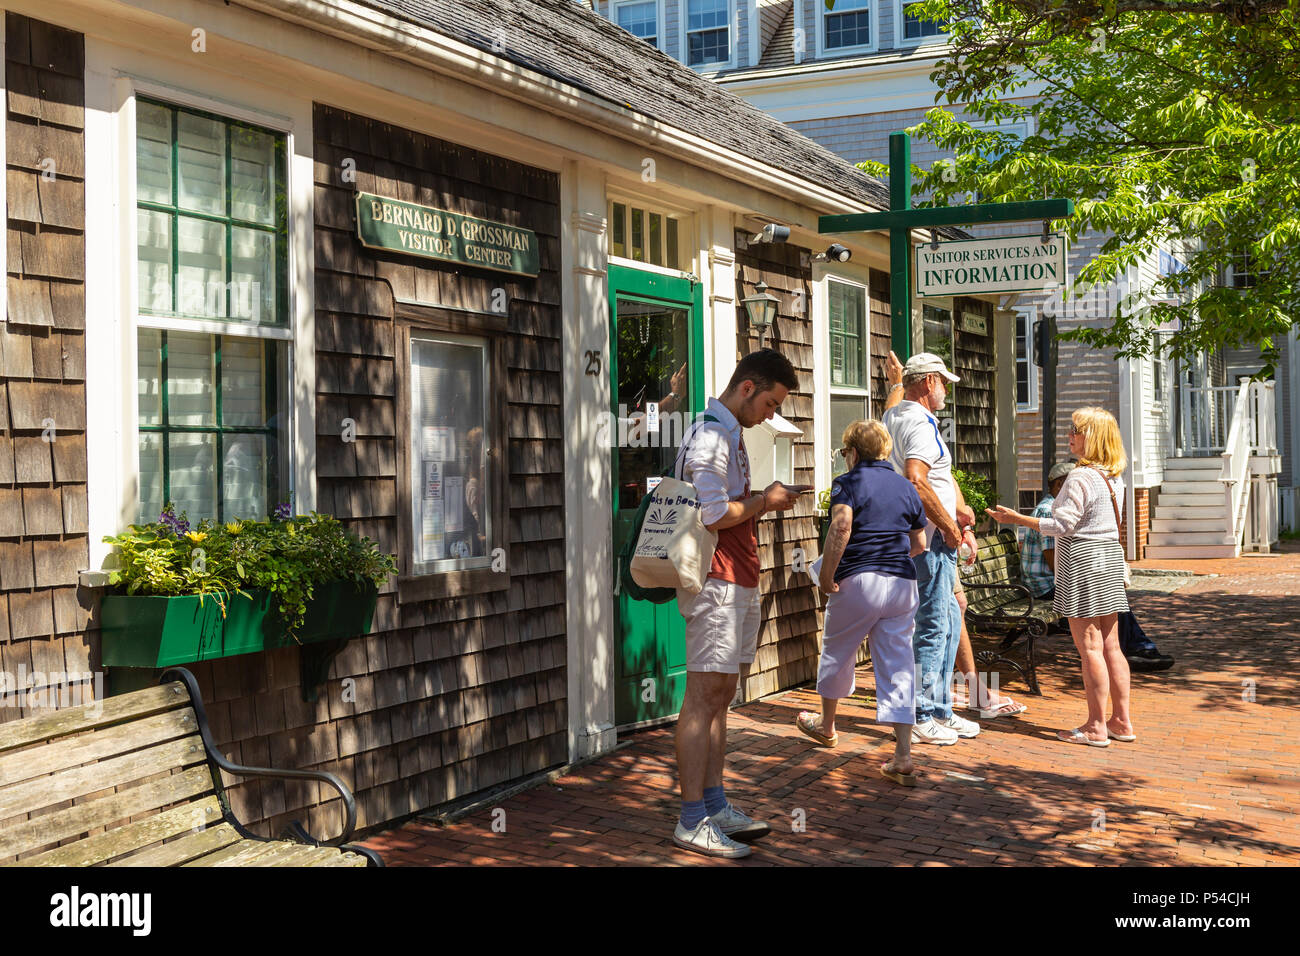 Tourists and visitors get information at the Visitor Center in Nantucket, Massachusetts. - Stock Image